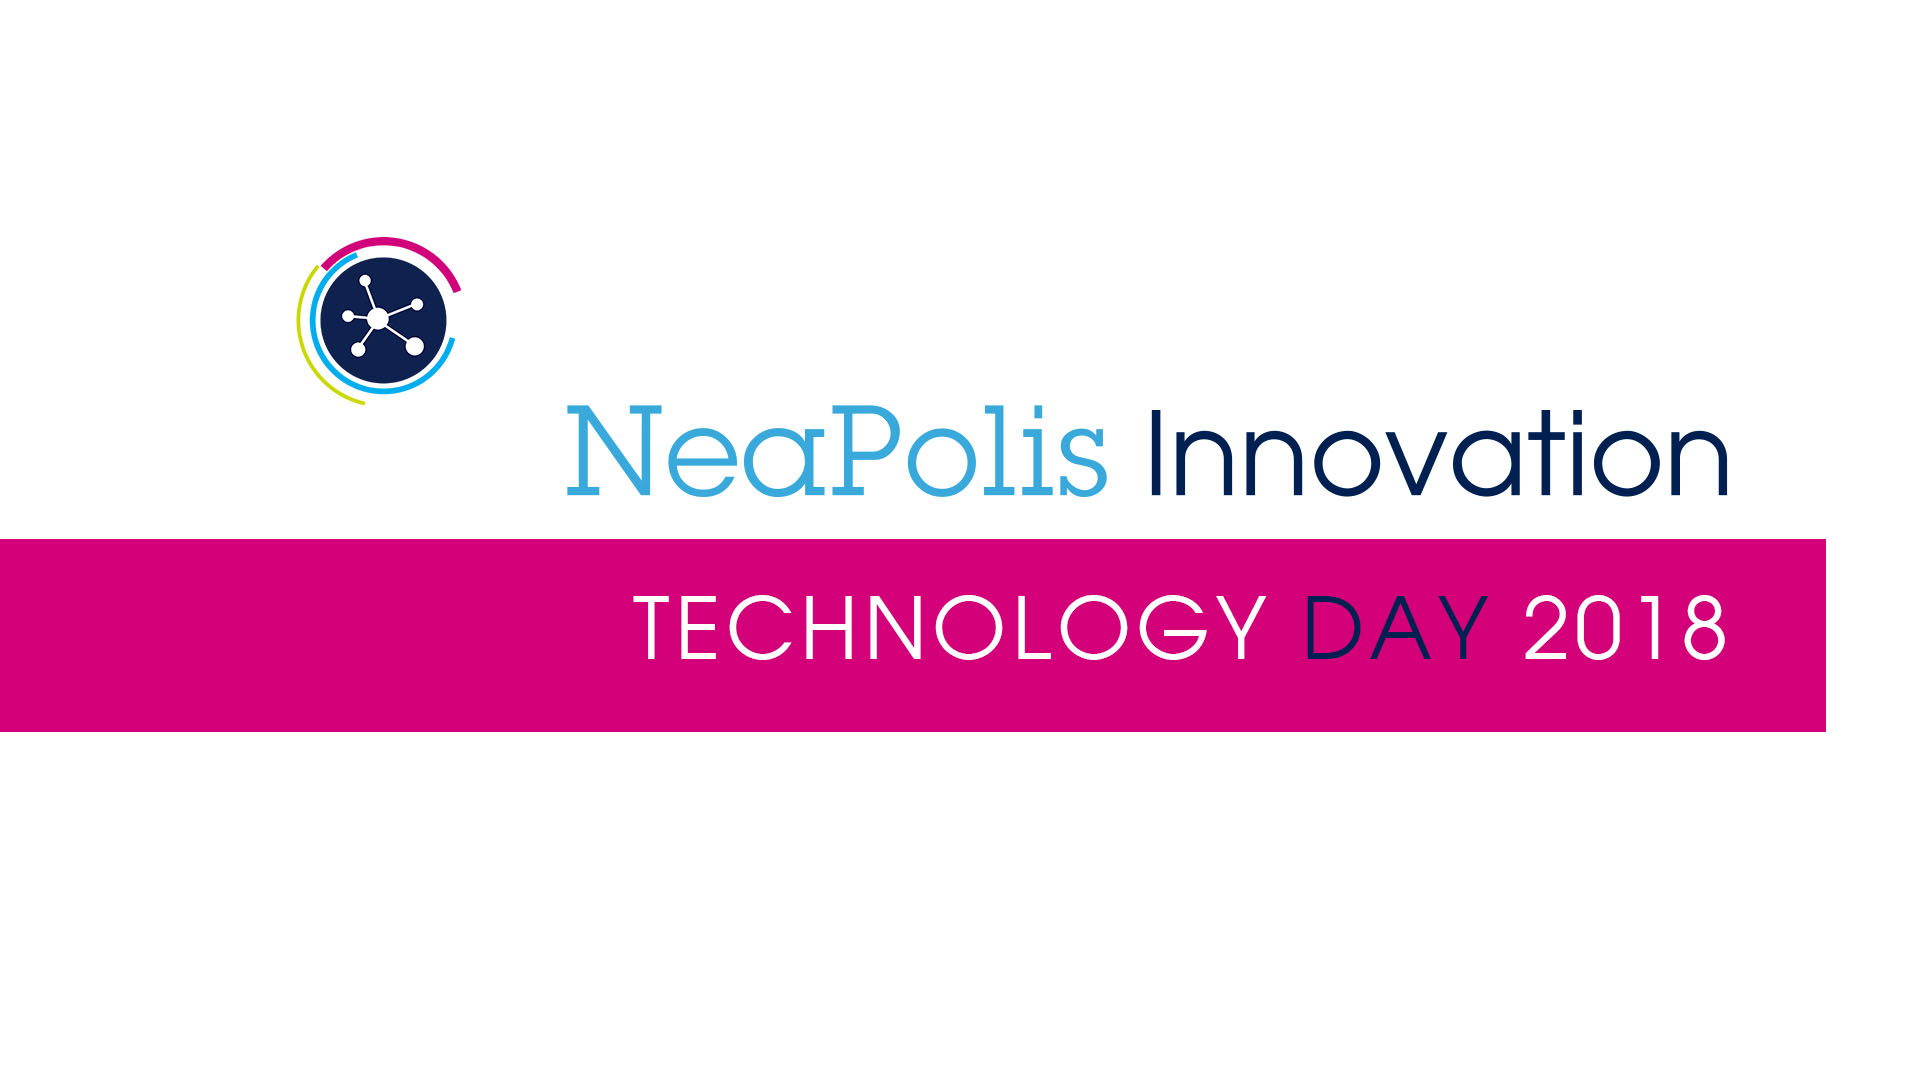 Technology Day 2018